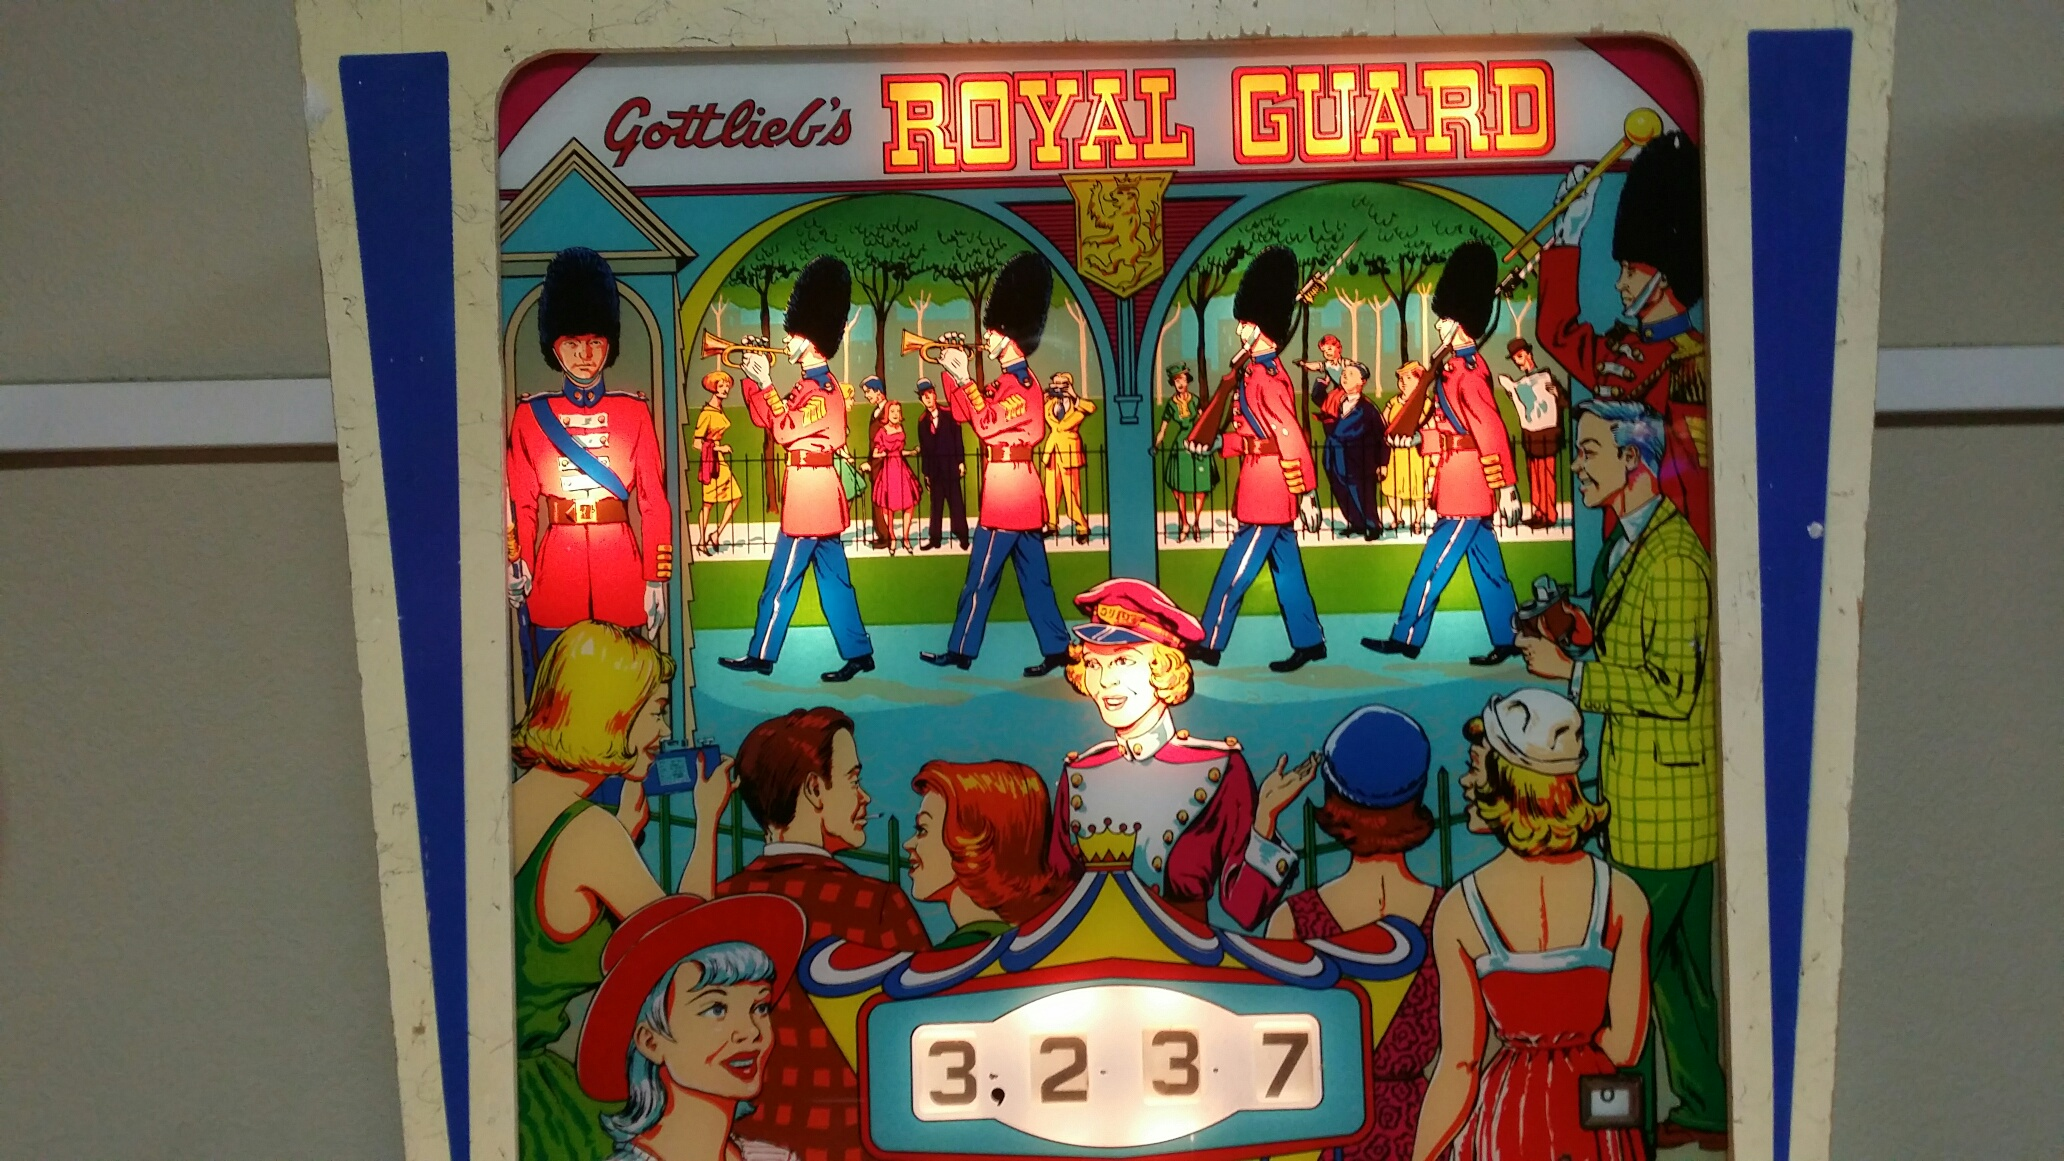 Royal Guard 3,237 points